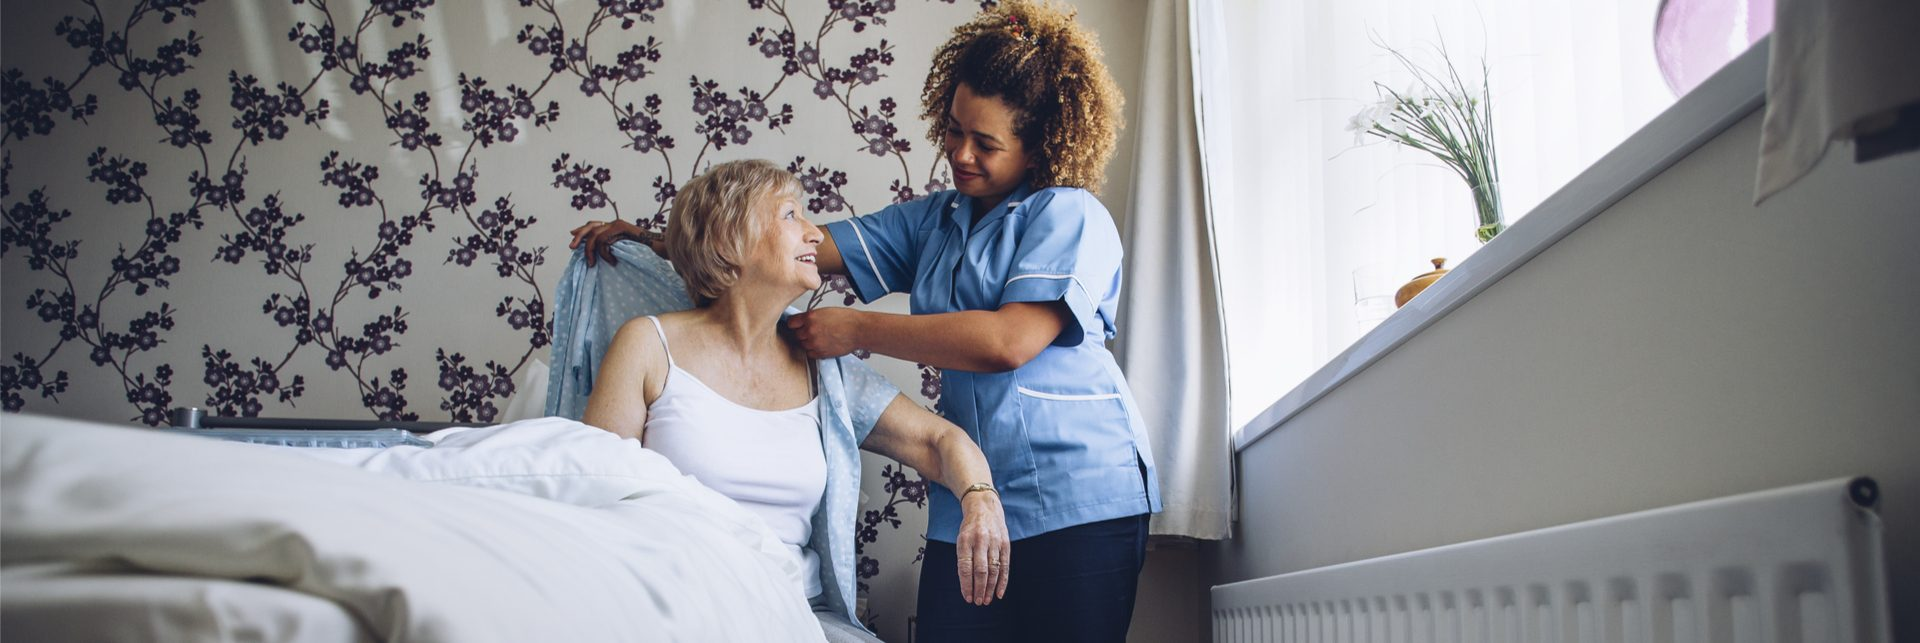 Home Carer & Care Assistants in Ipswich & Suffolk